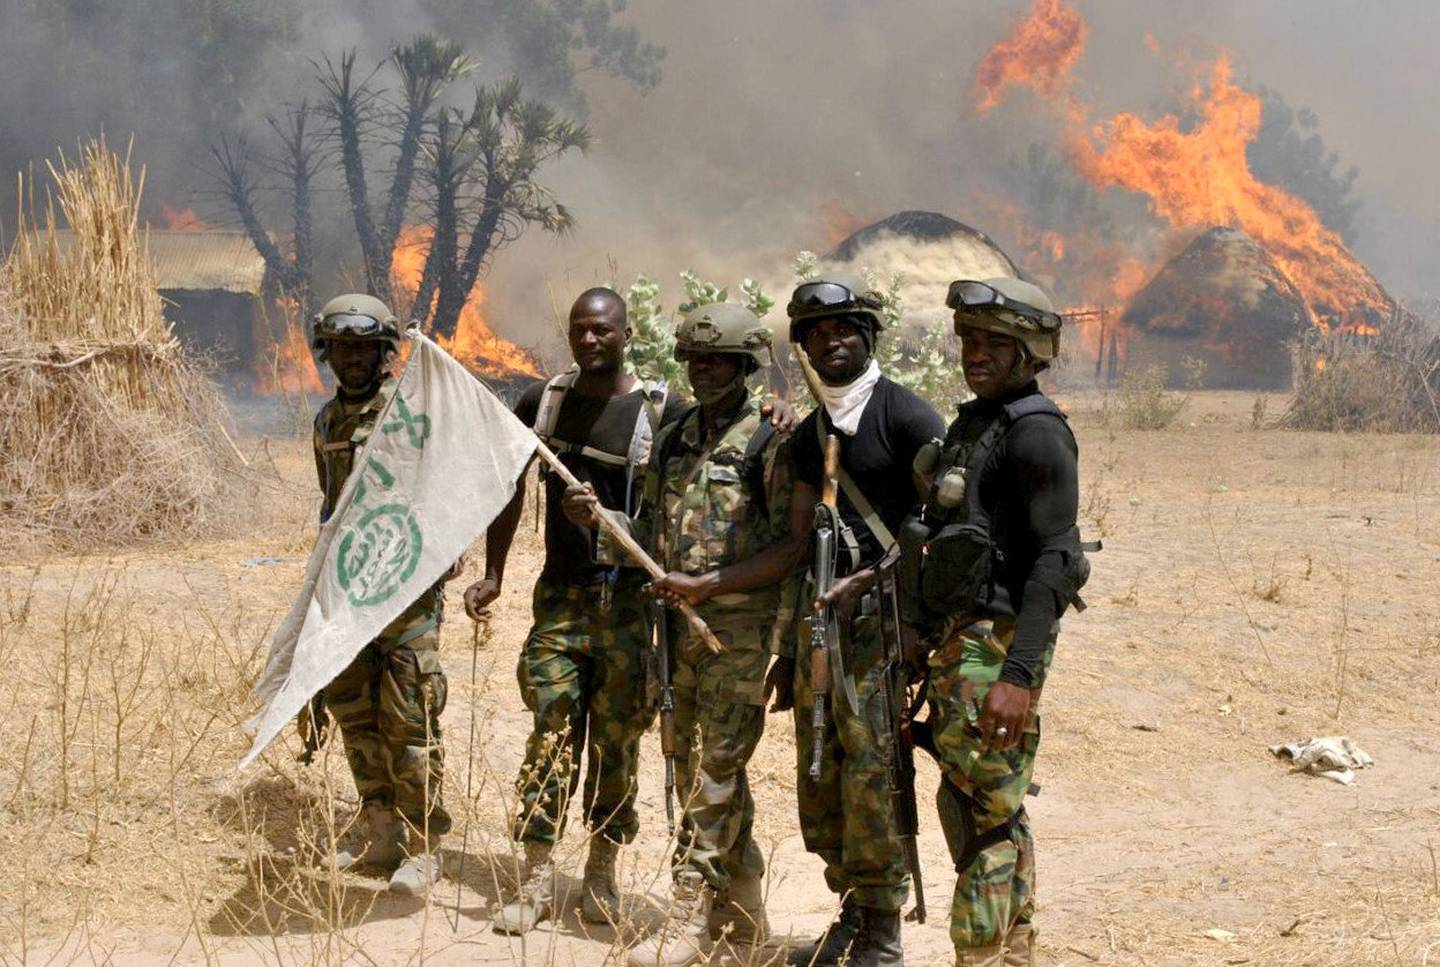 BORNO, NIGERIA - MARCH 29: Nigerian soldiers are seen after an operation against Boko Haram terrorists at a terrorist camp in Borno, Nigeria on March 29, 2016. (Photo by Stringer/Anadolu Agency/Getty Images)